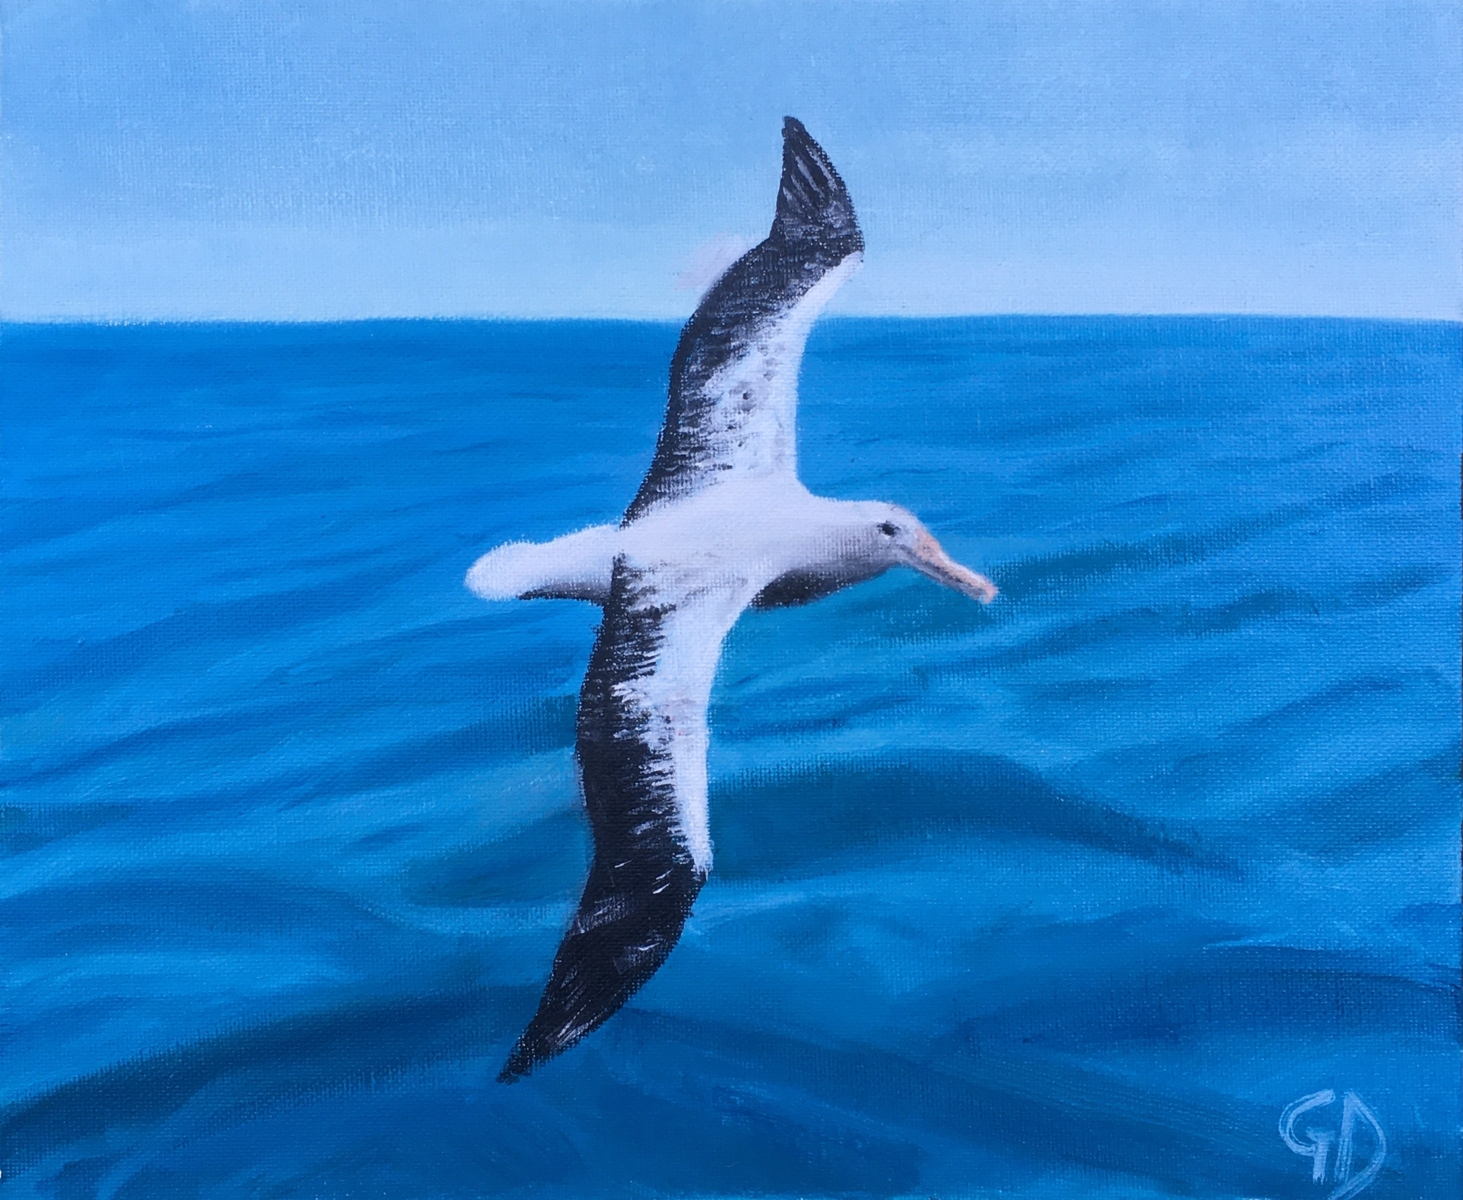 "Albatross.jpg - Albatross Water-soluble oil on canvas, 10 x 12"" (25.4 x 30.5 cm) Completed May 2020"